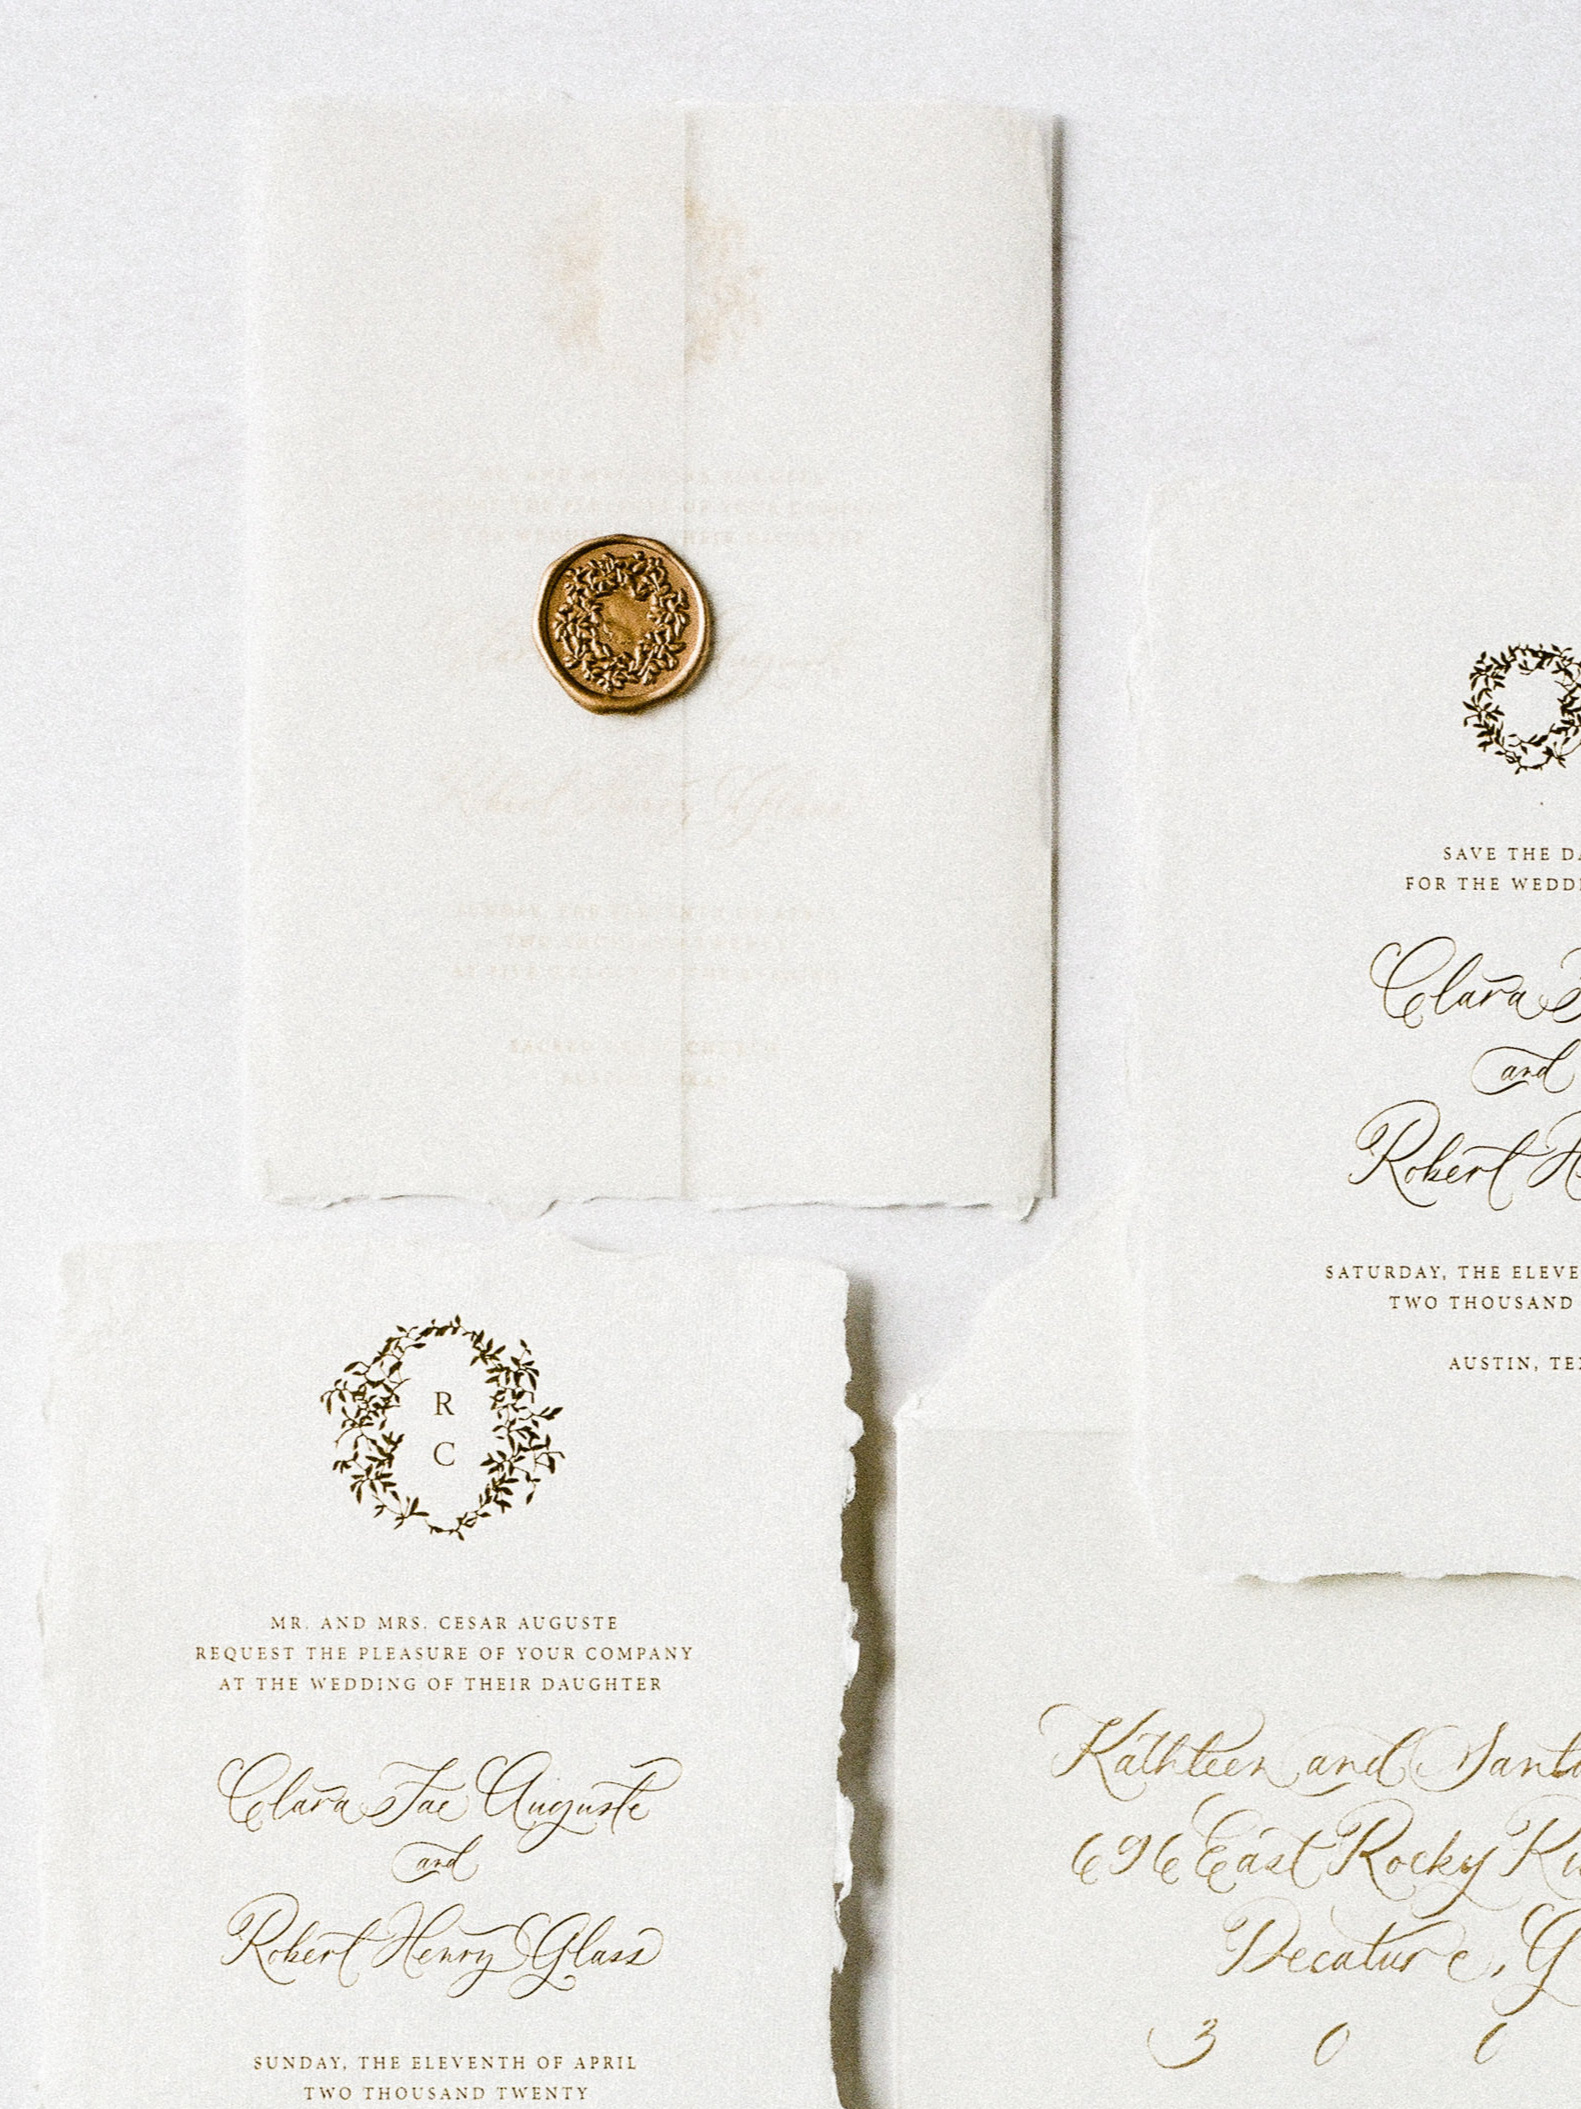 vellum with wax seal